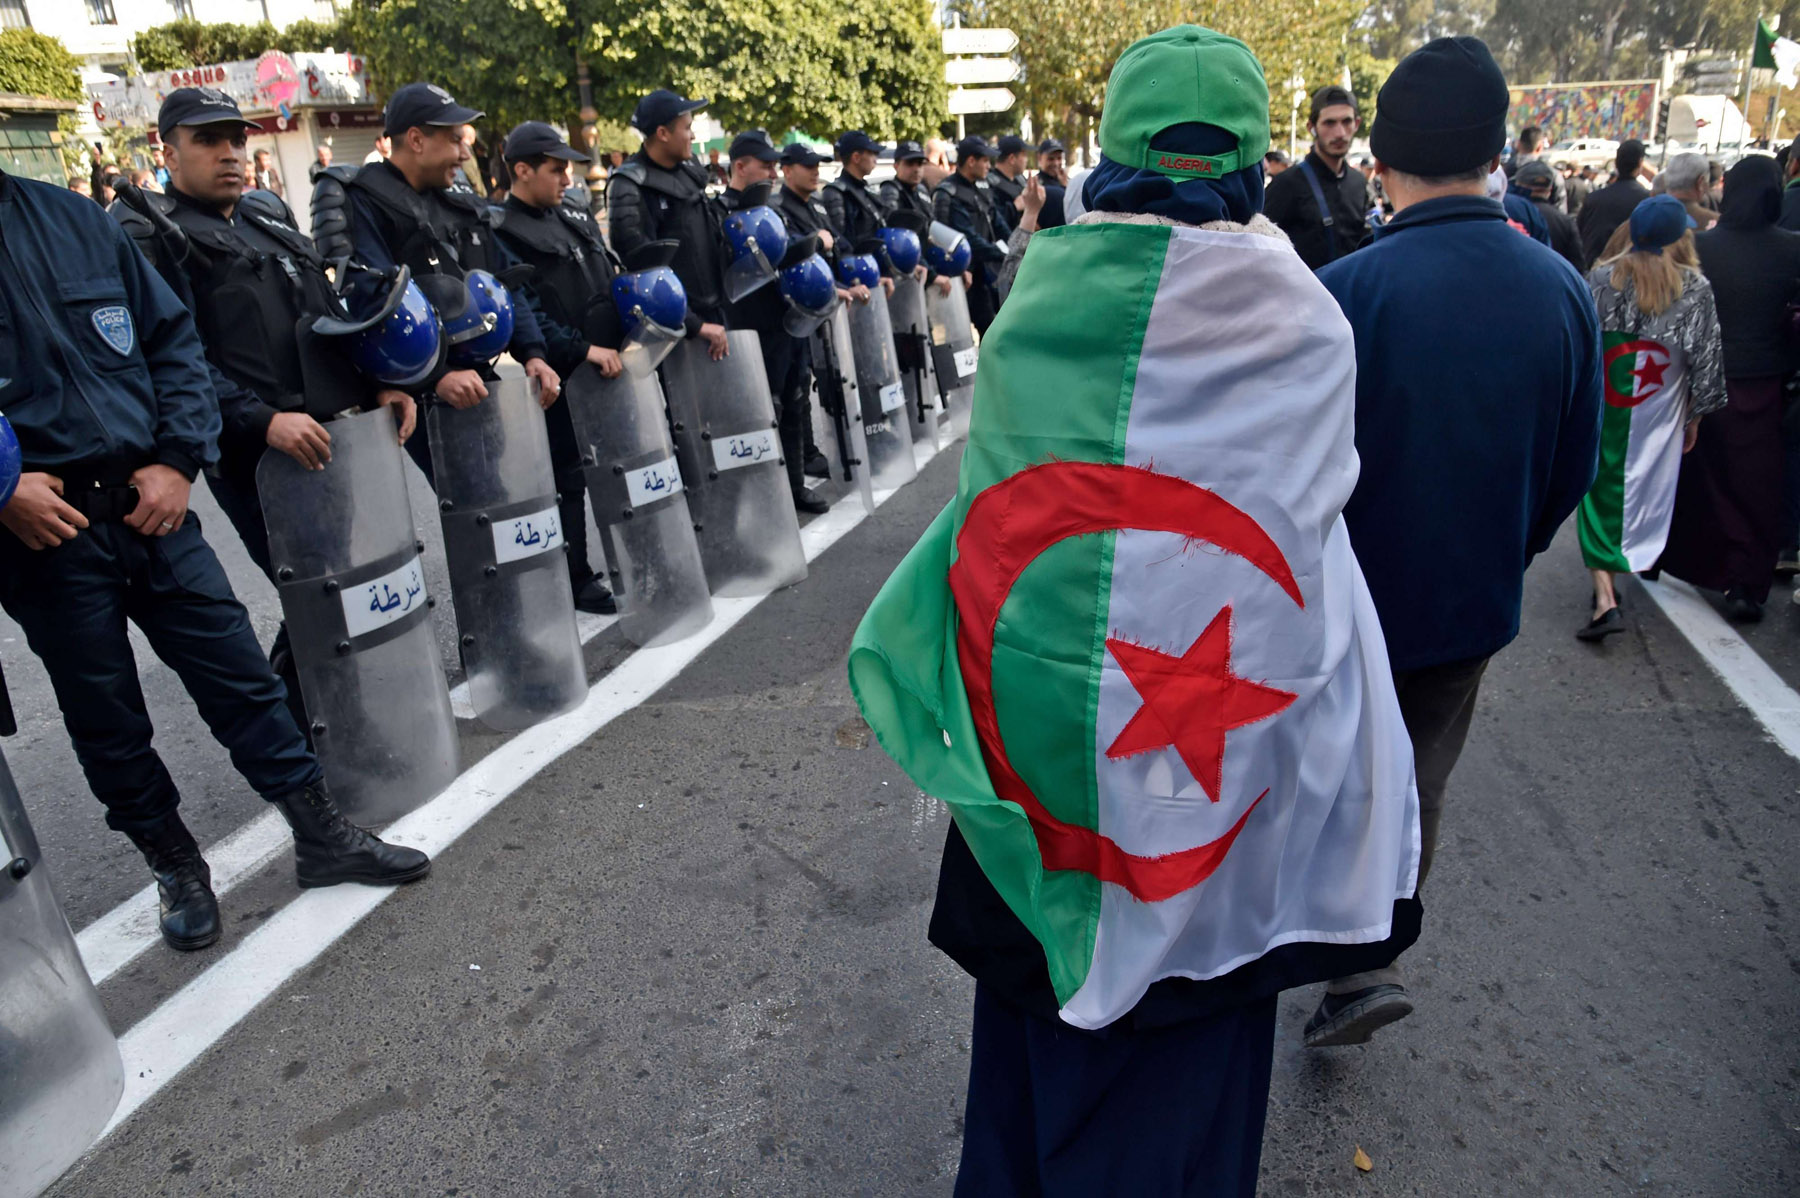 Algerian protesters take part in an anti-government demonstration in the capital Algiers, last February. (AFP)